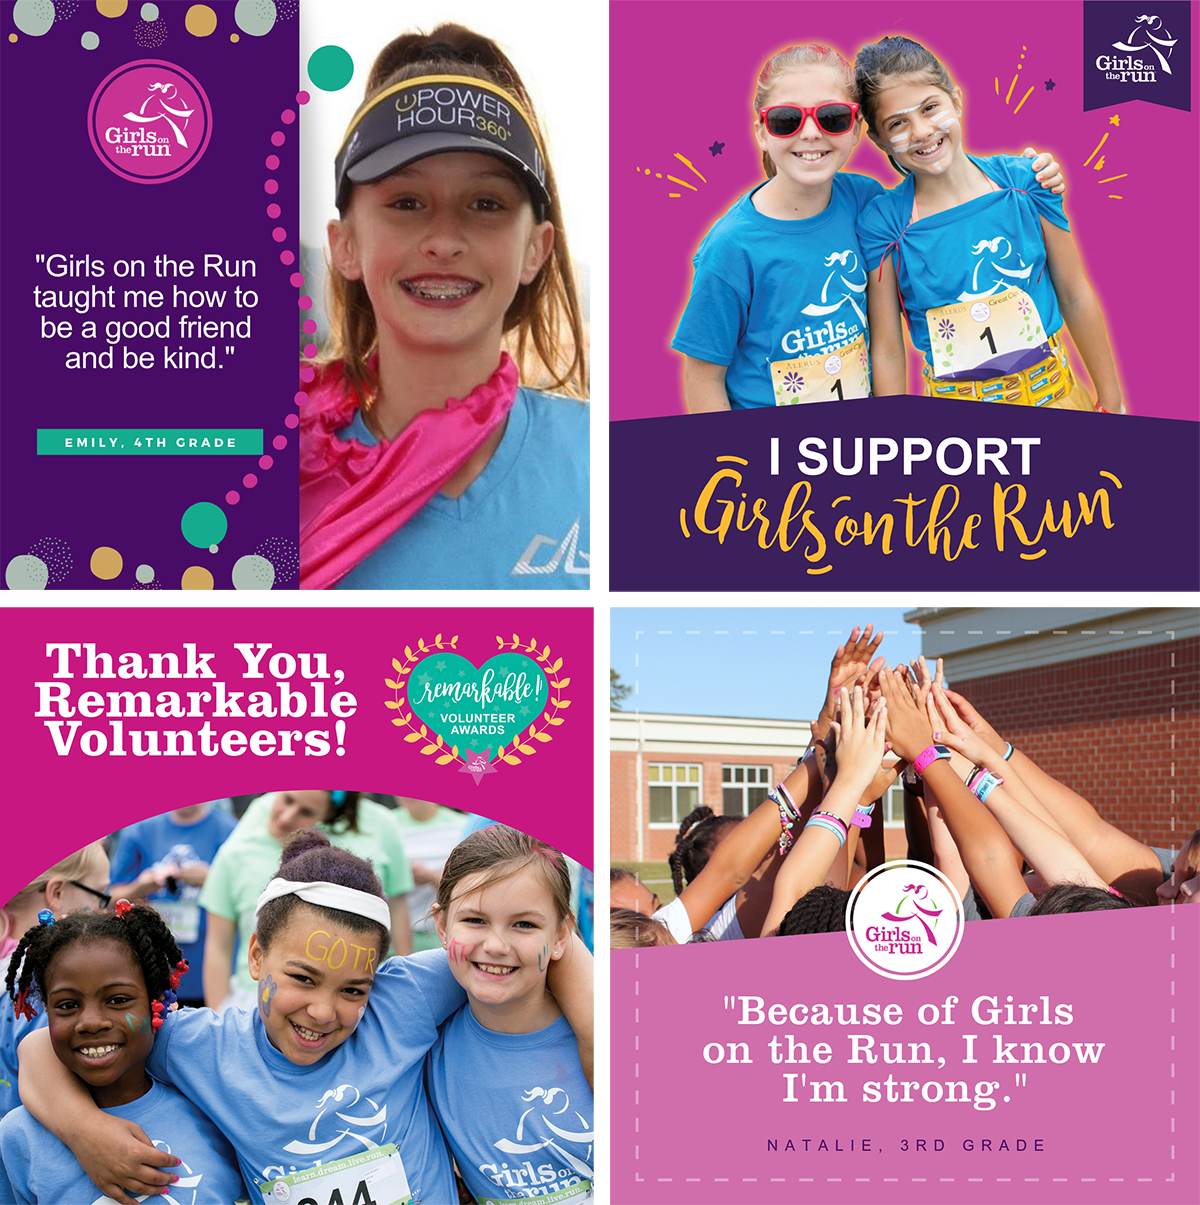 Social Media Marketing - One of the essential marketing materials you can have for a non-profit organization is social media.These are a few select Facebook and Instagram marketing posts I designed using the Girls on the Run branding guideline. My job was to use these pre-existing design elements to create appealing and eye-catching posts to attract new members.